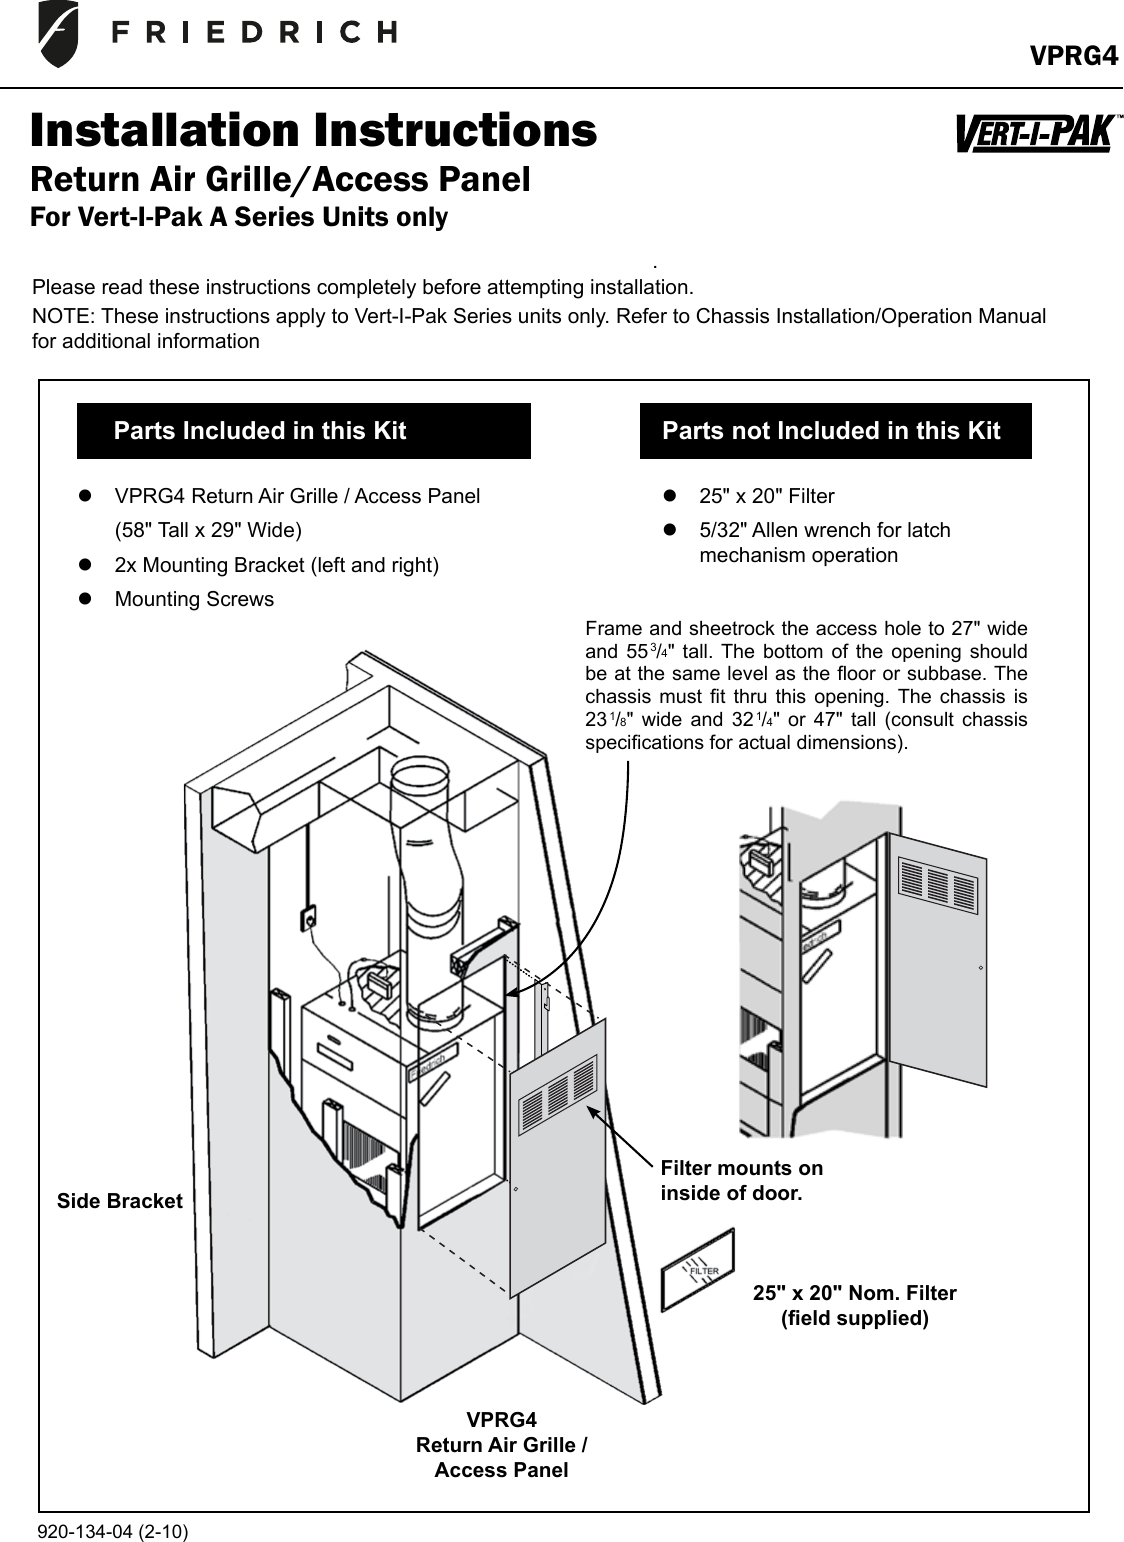 Friedrich Air Conditioner Vprg4 Users Manual 920134042 10 Io Conditioners Wiring Diagram Page 1 Of 5